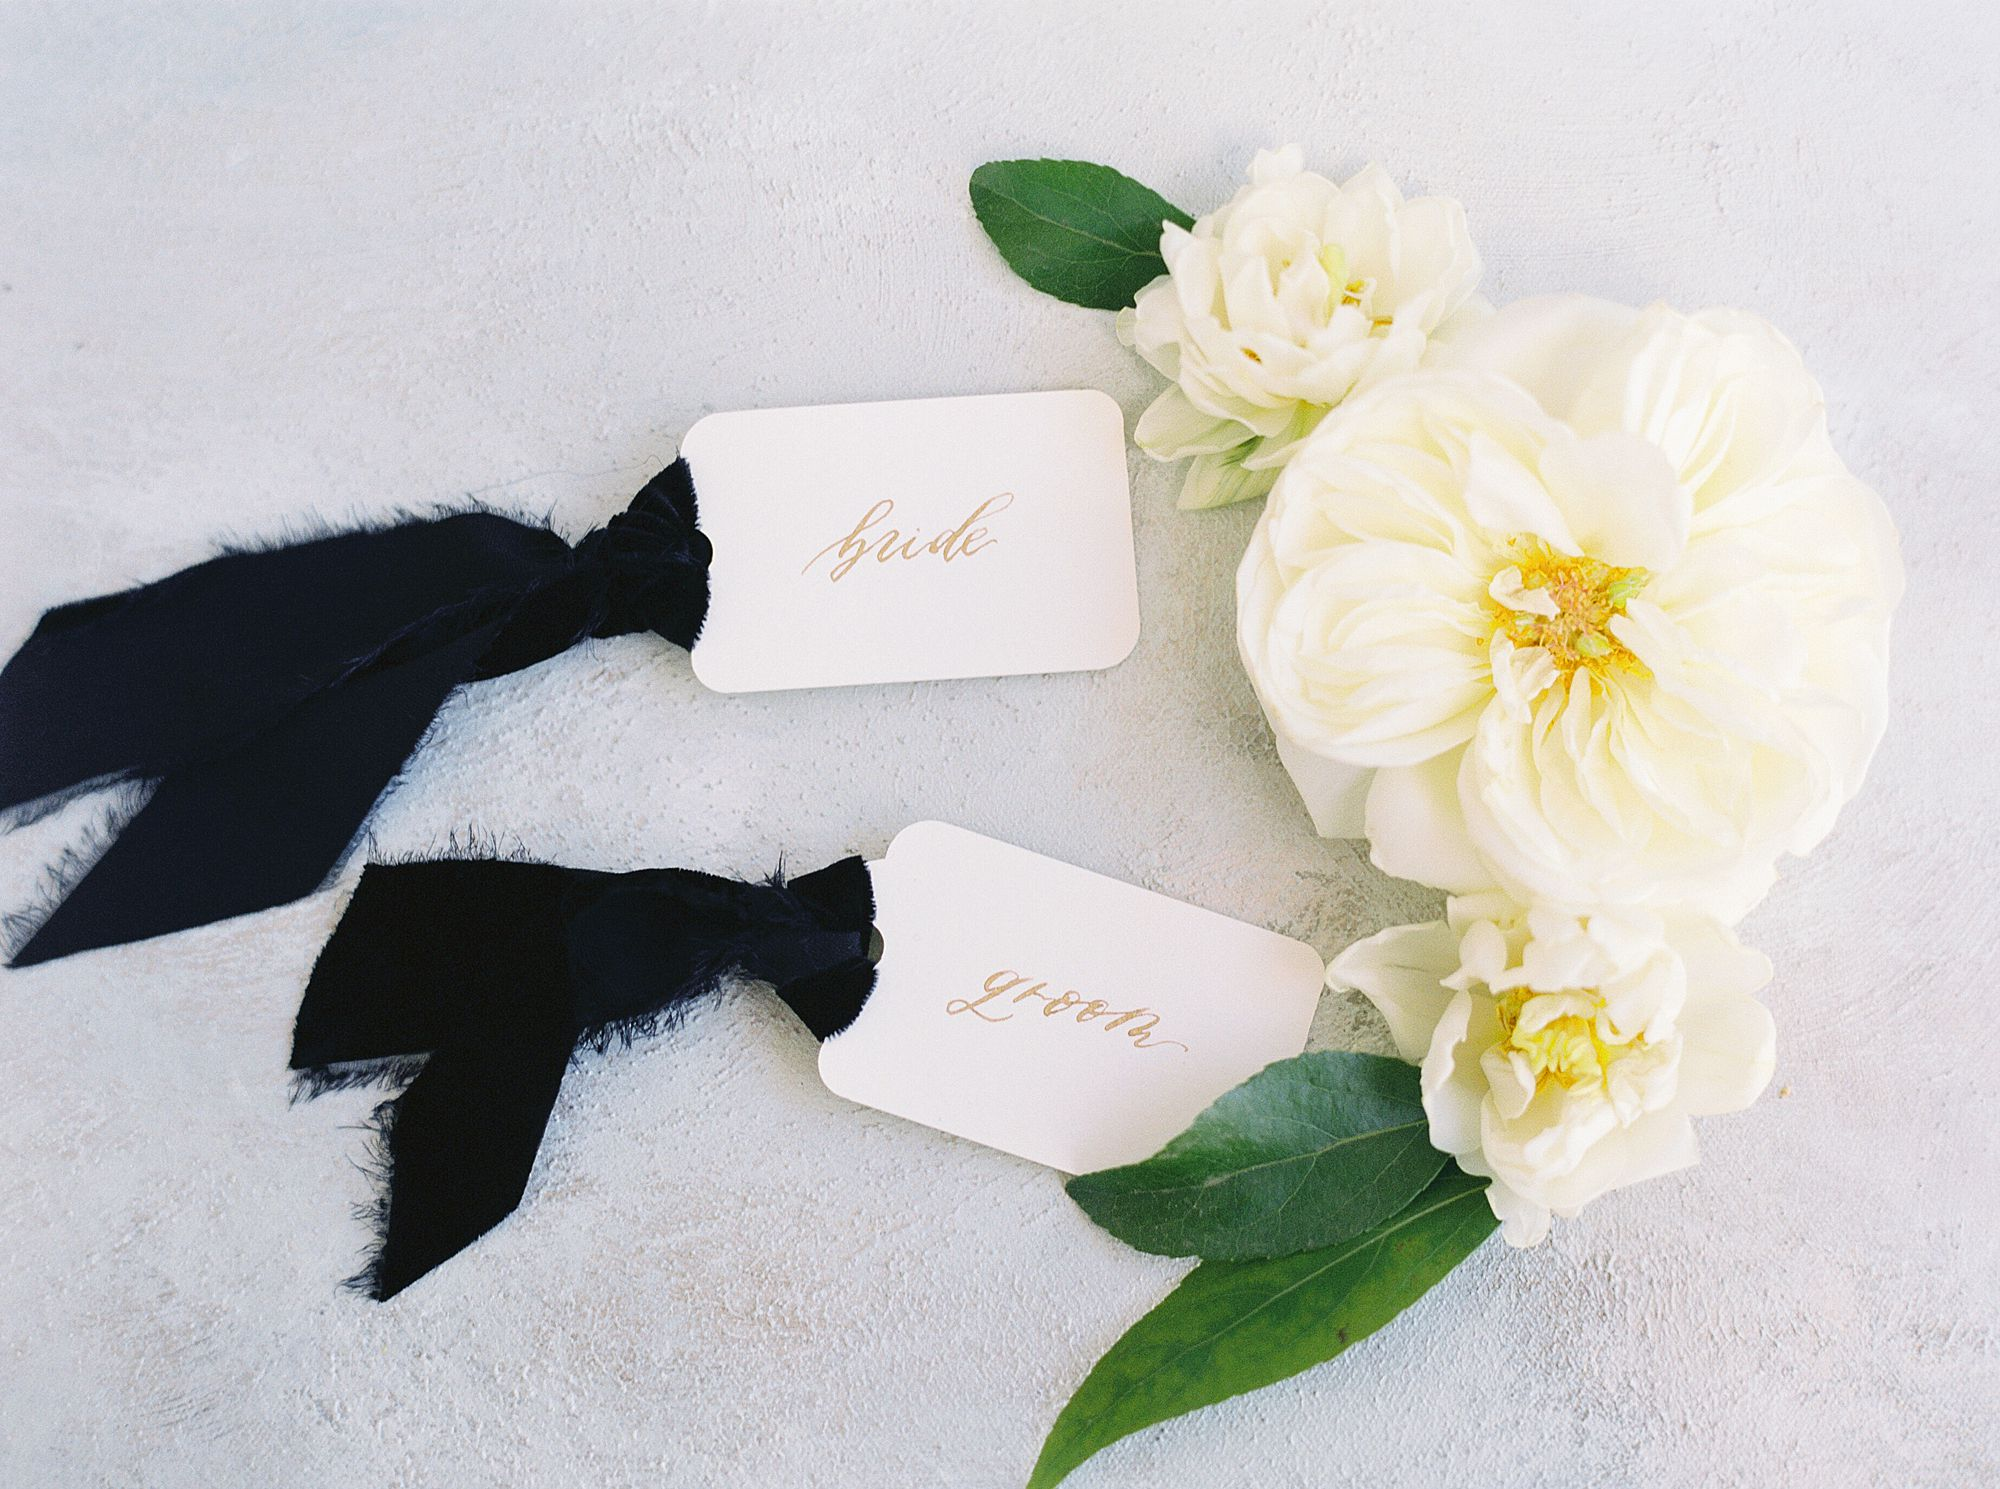 Park Winters Micro-Wedding Inspiration on Style Me Pretty - Stephanie Teague Events - Ashley Baumgartner - Park Winters Wedding - Black Tie Wedding - Micro-Wedding Sacramento Photographer_0054.jpg